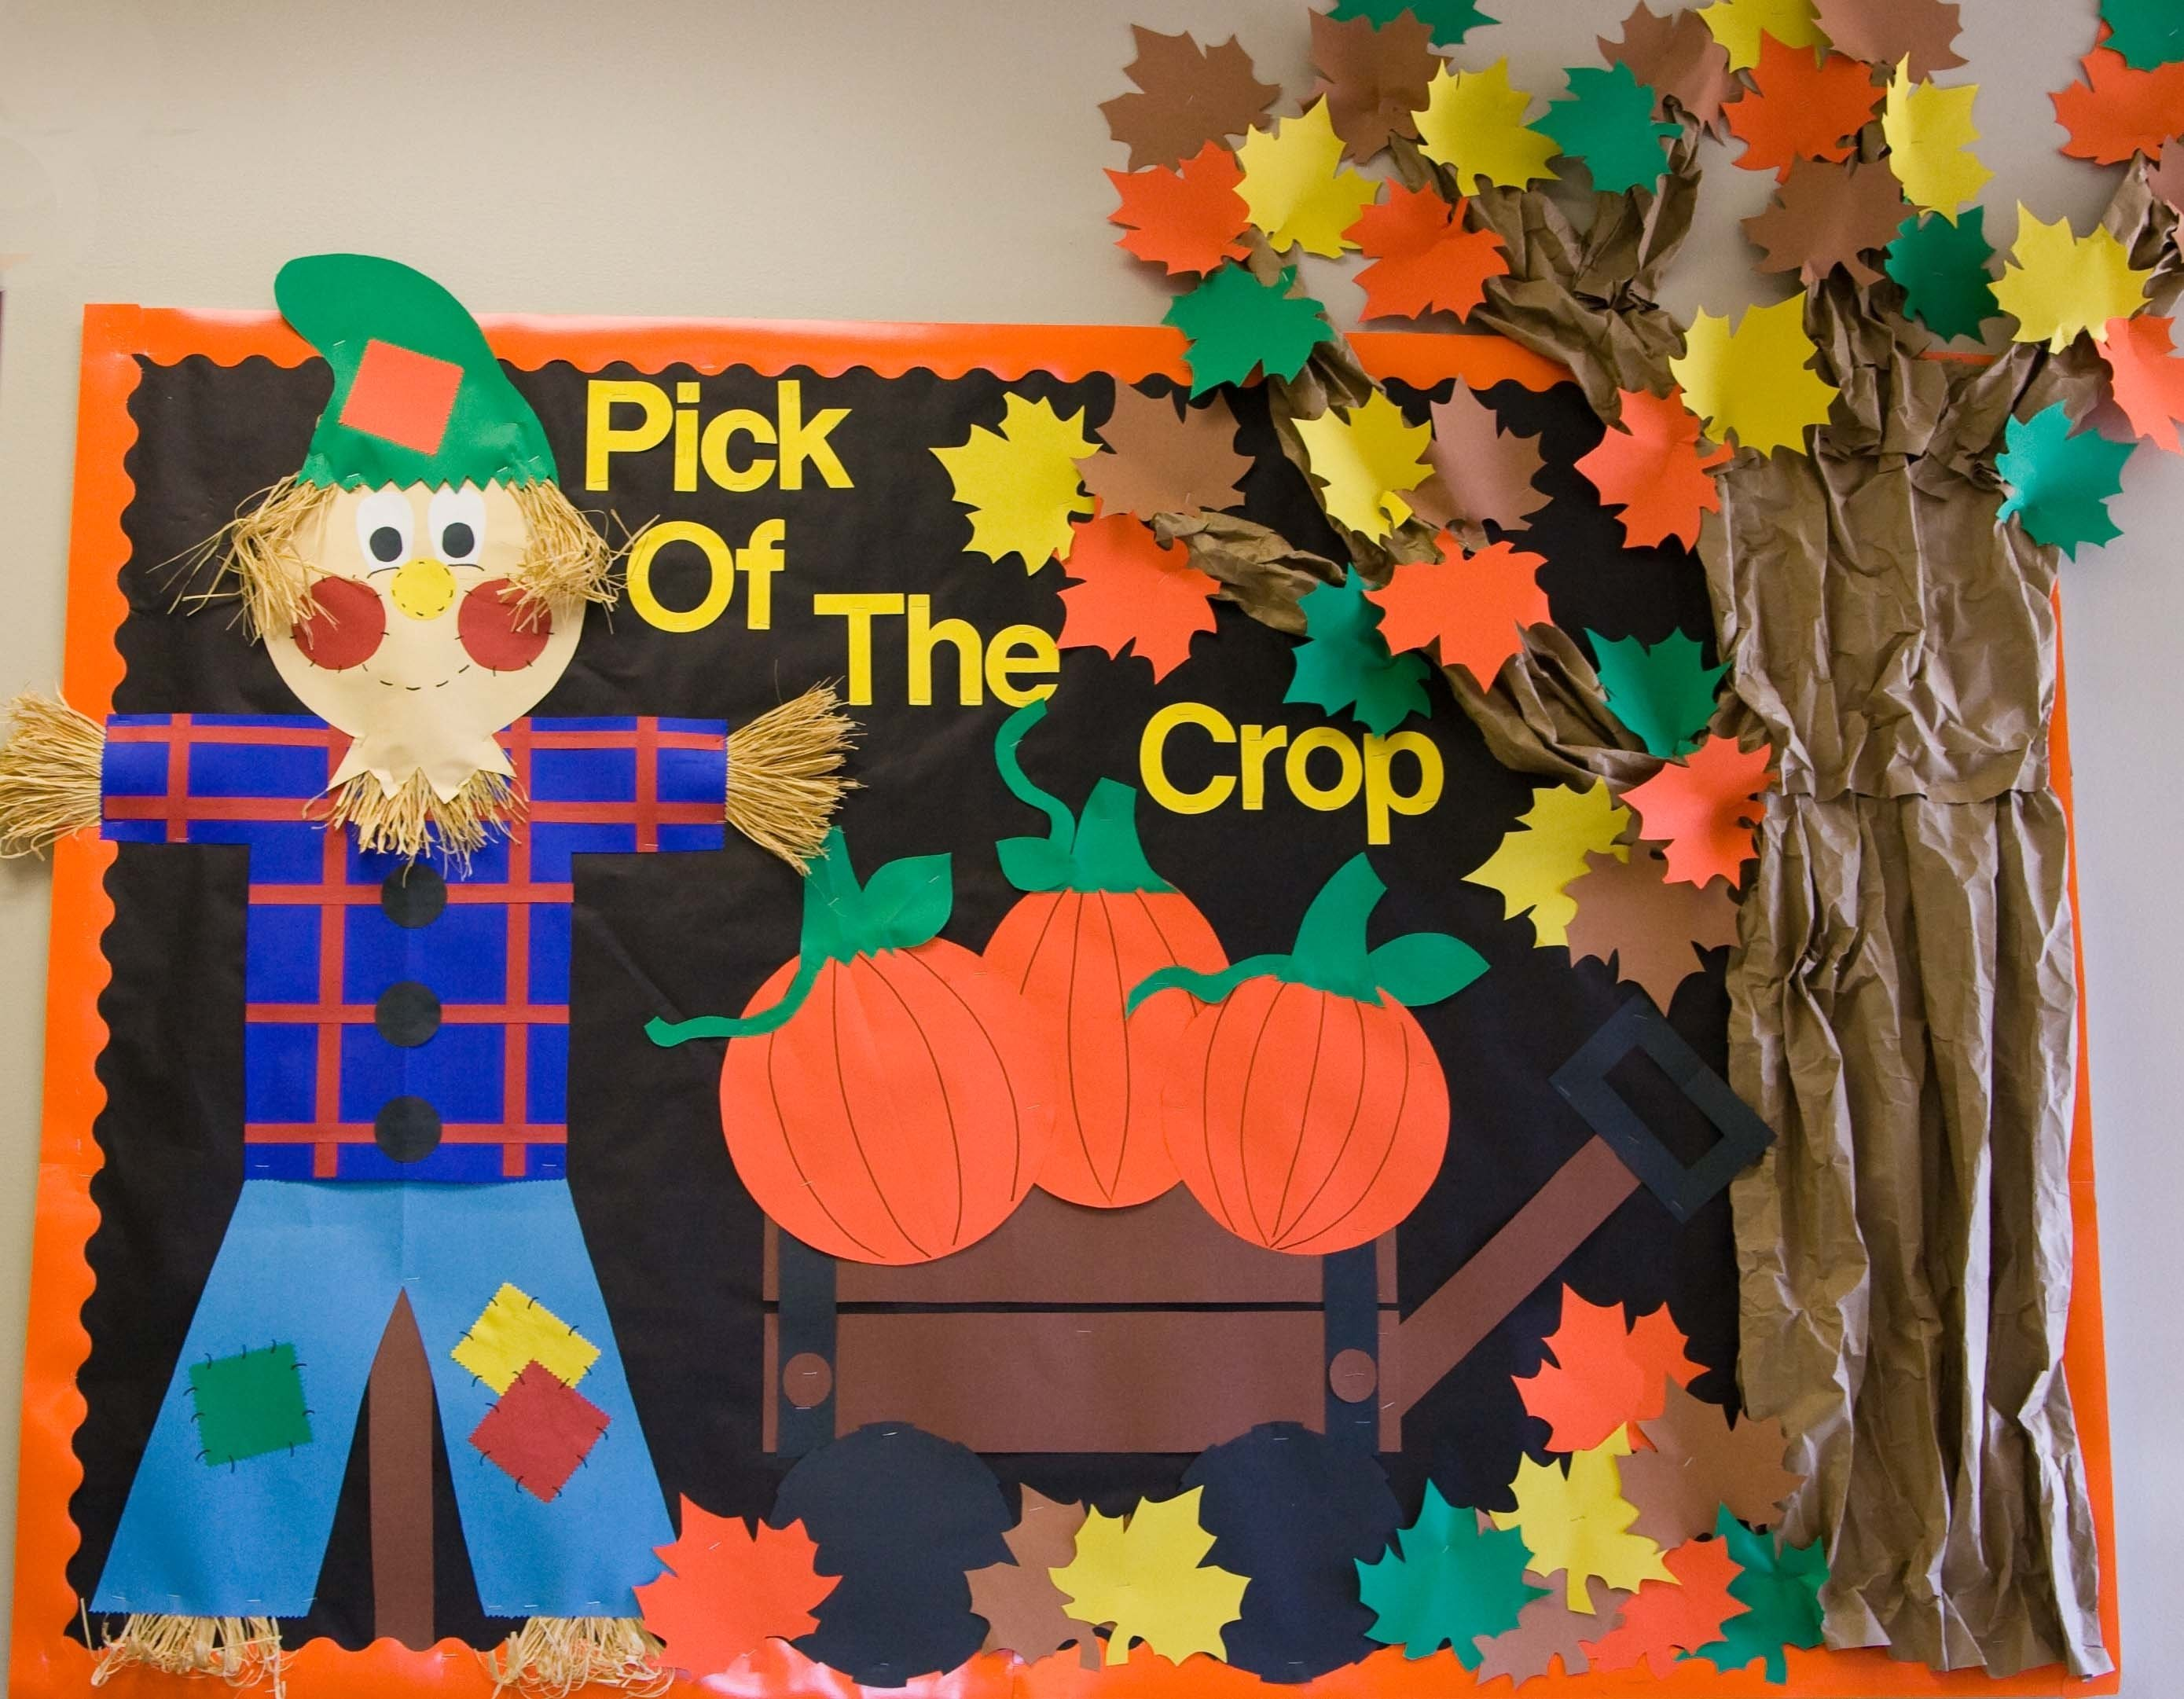 10 Unique Bulletin Board Ideas For Fall bulletin boards hand me down ideas 6 2020